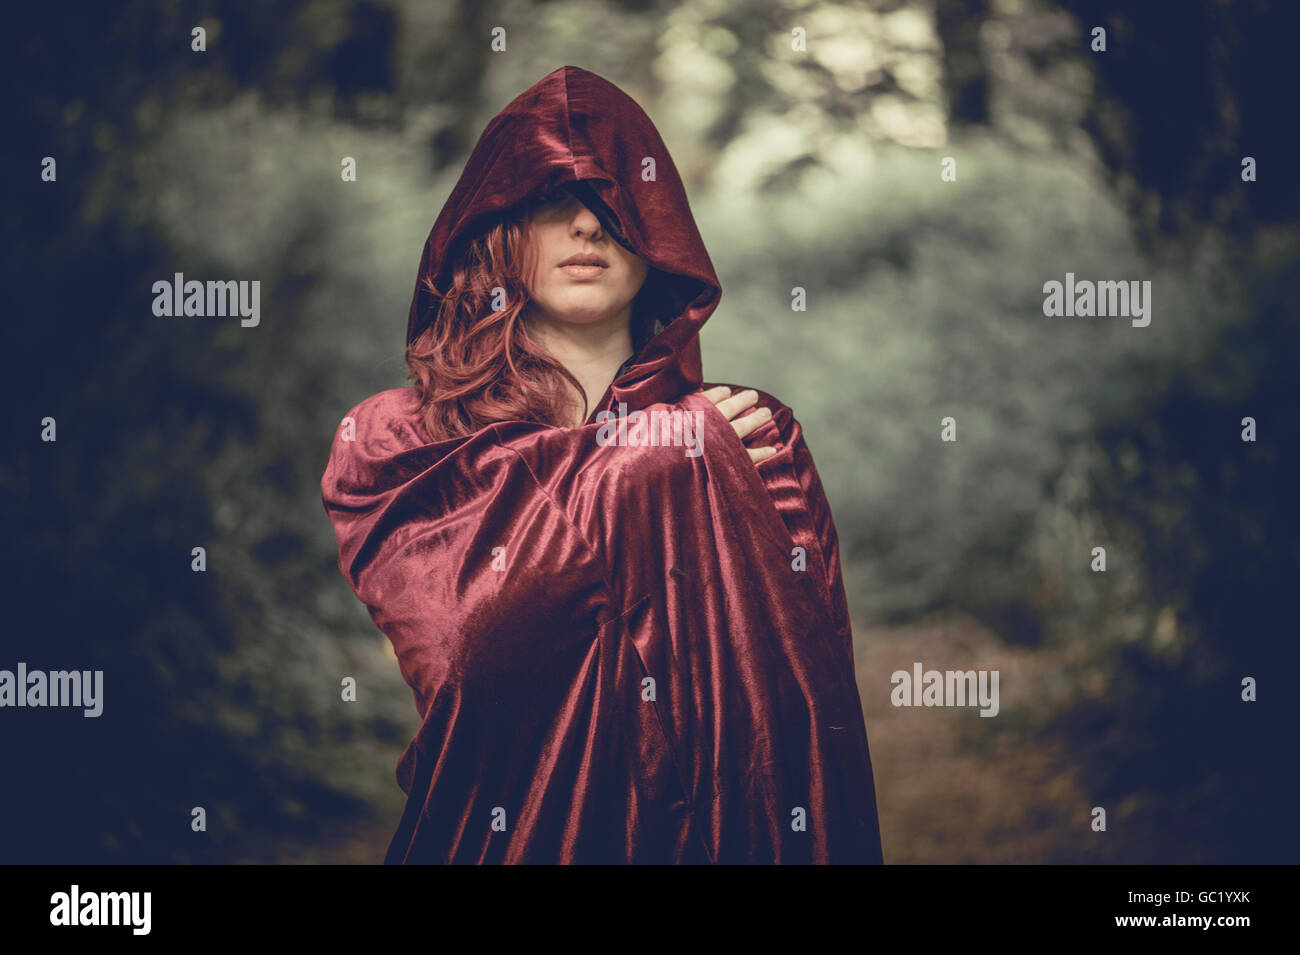 Woman of mystery: A young red haired redhead woman girl wearing a cape, obscuring her face, alone in a forest, looking - Stock Image